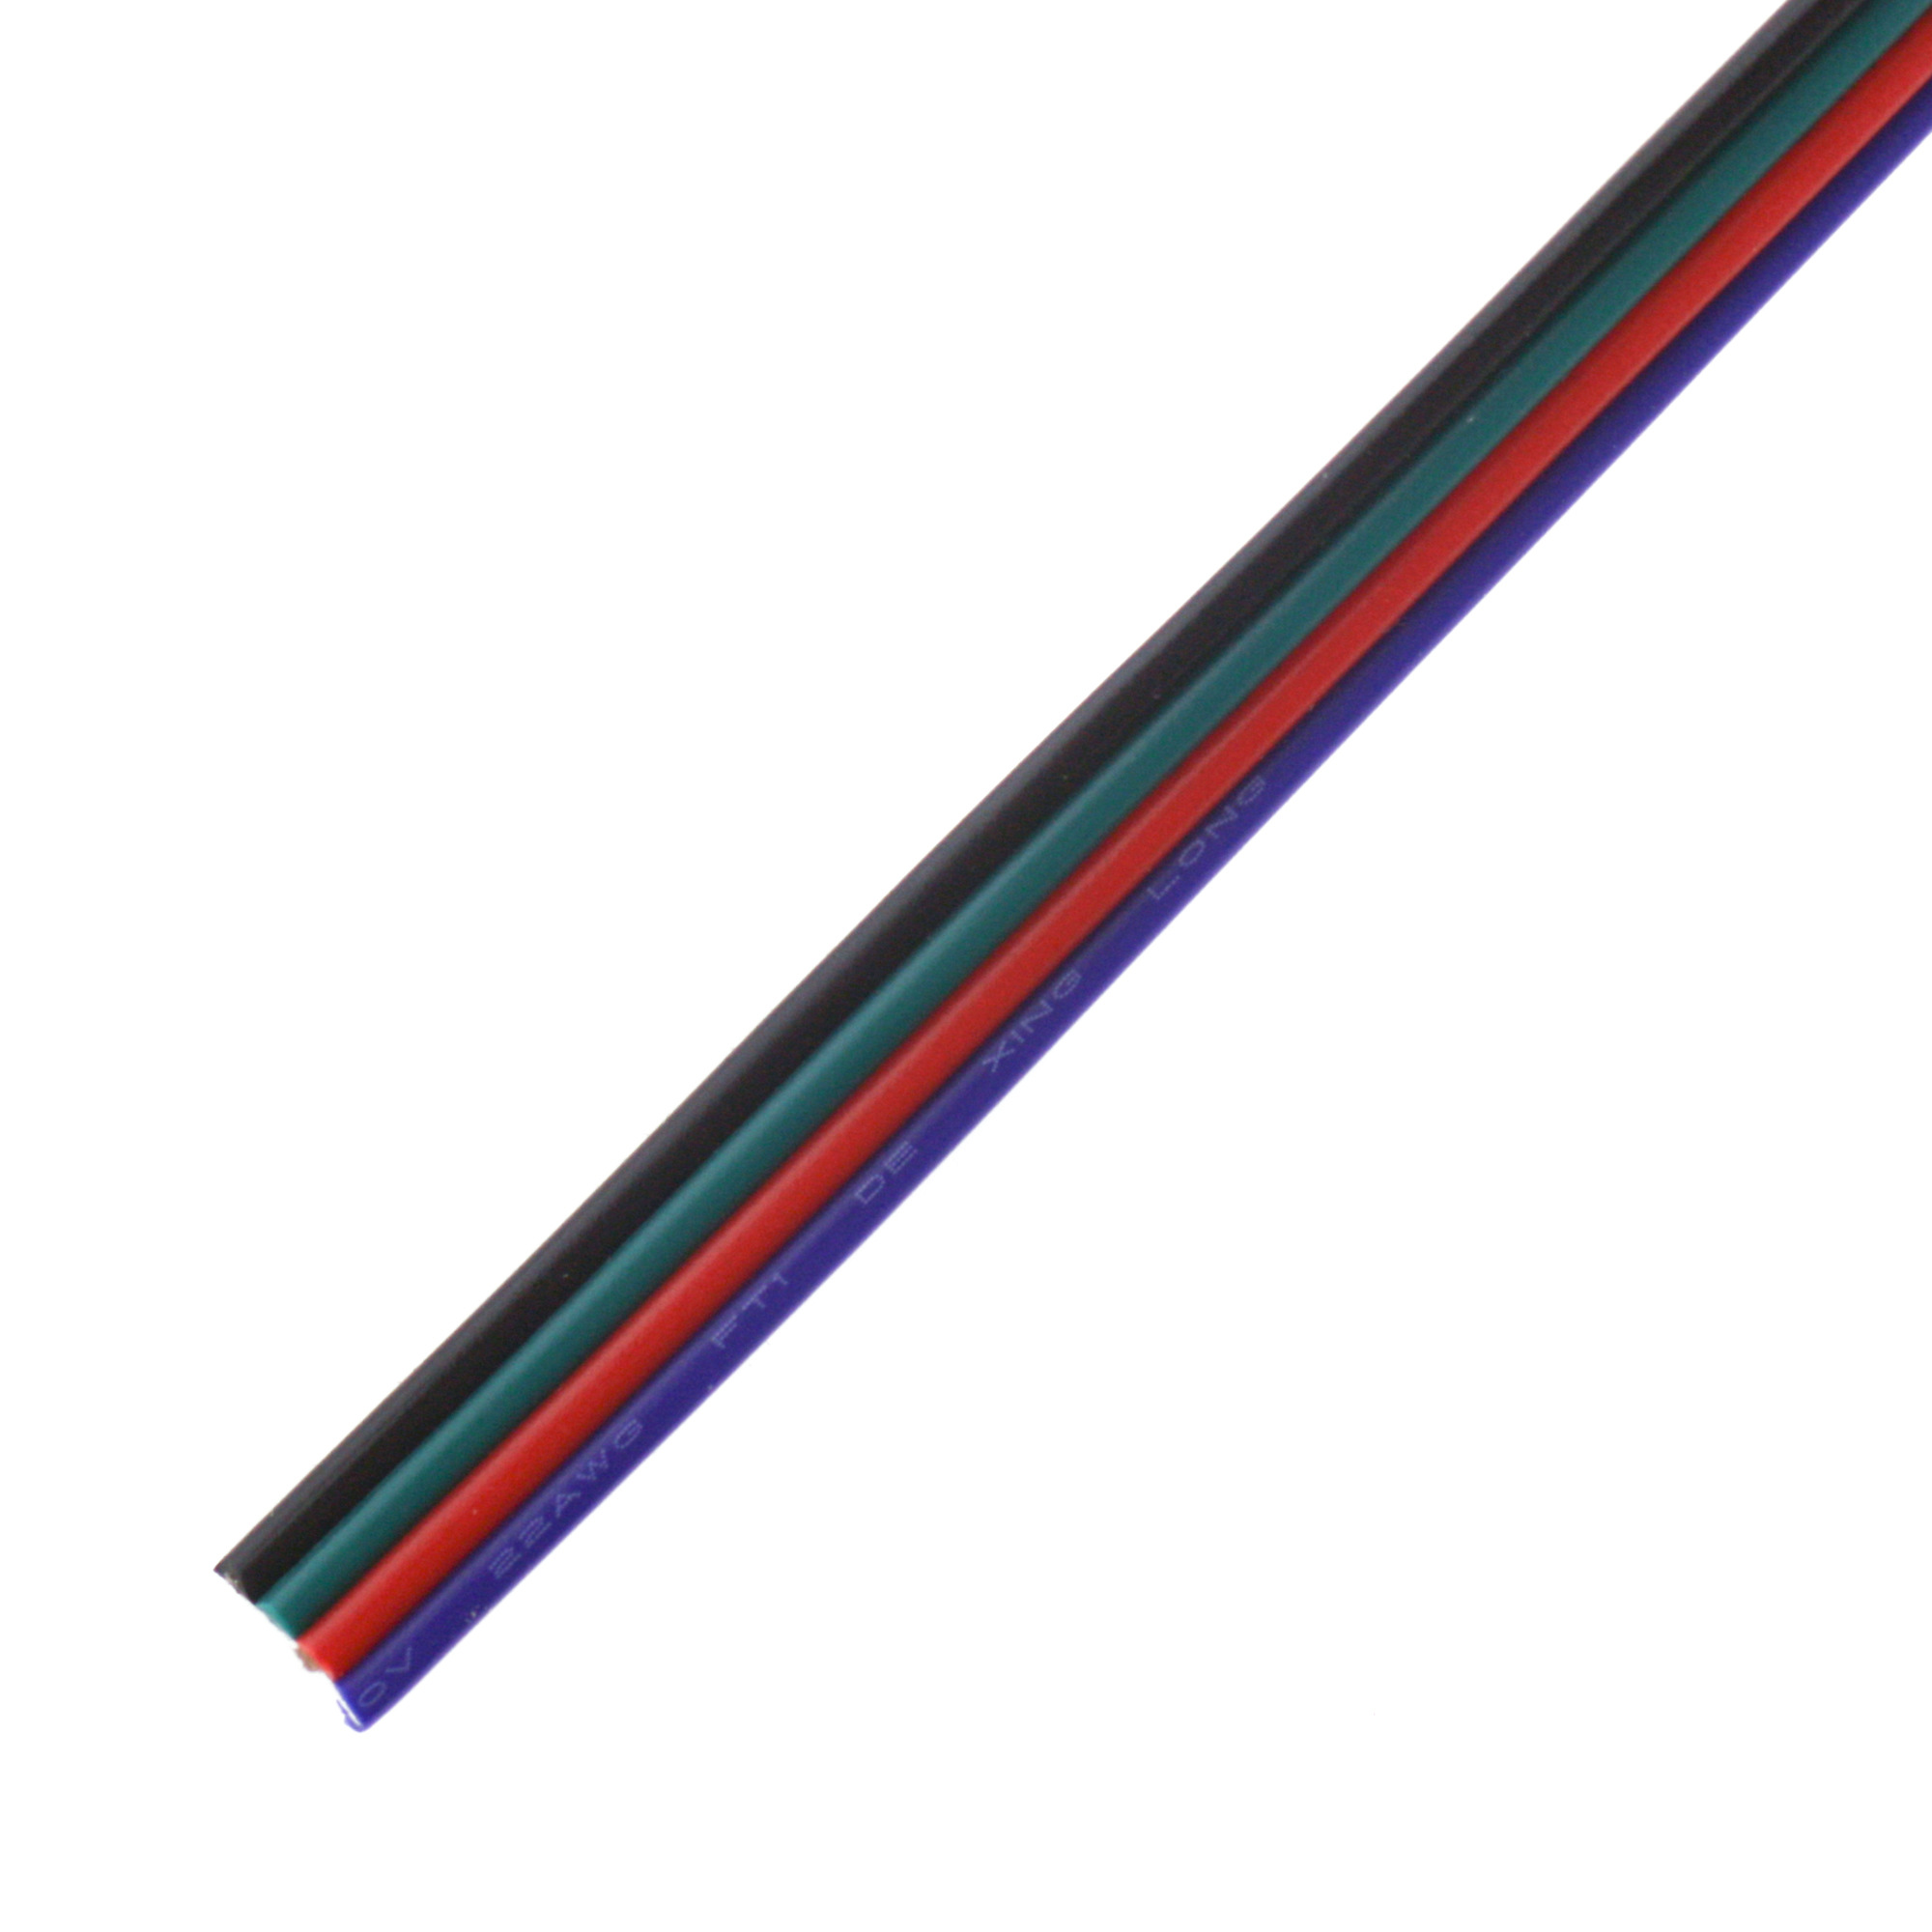 RGB connection wire - 50 meter